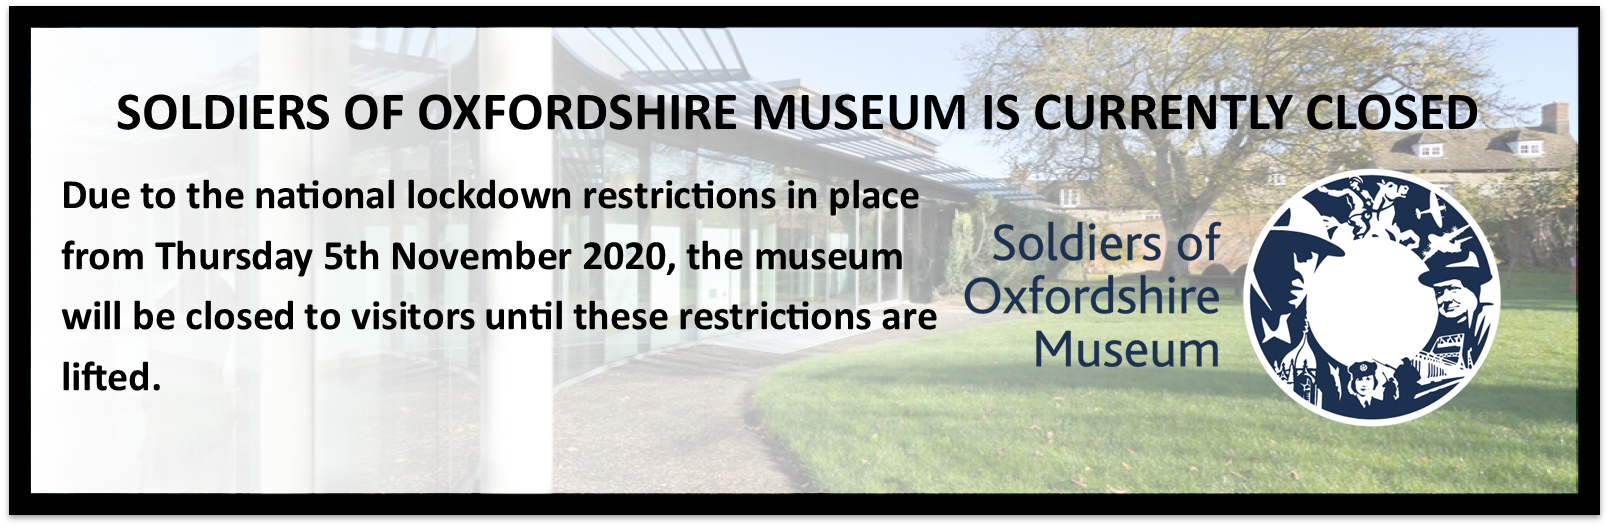 SOLDIERS OF OXFORDSHIRE MUSEUM IS CURRENTLY CLOSED Due to the national lockdown restrictions in place from Thursday 5th November 2020, the museum will be closed to visitors until these restrictions are lifted.